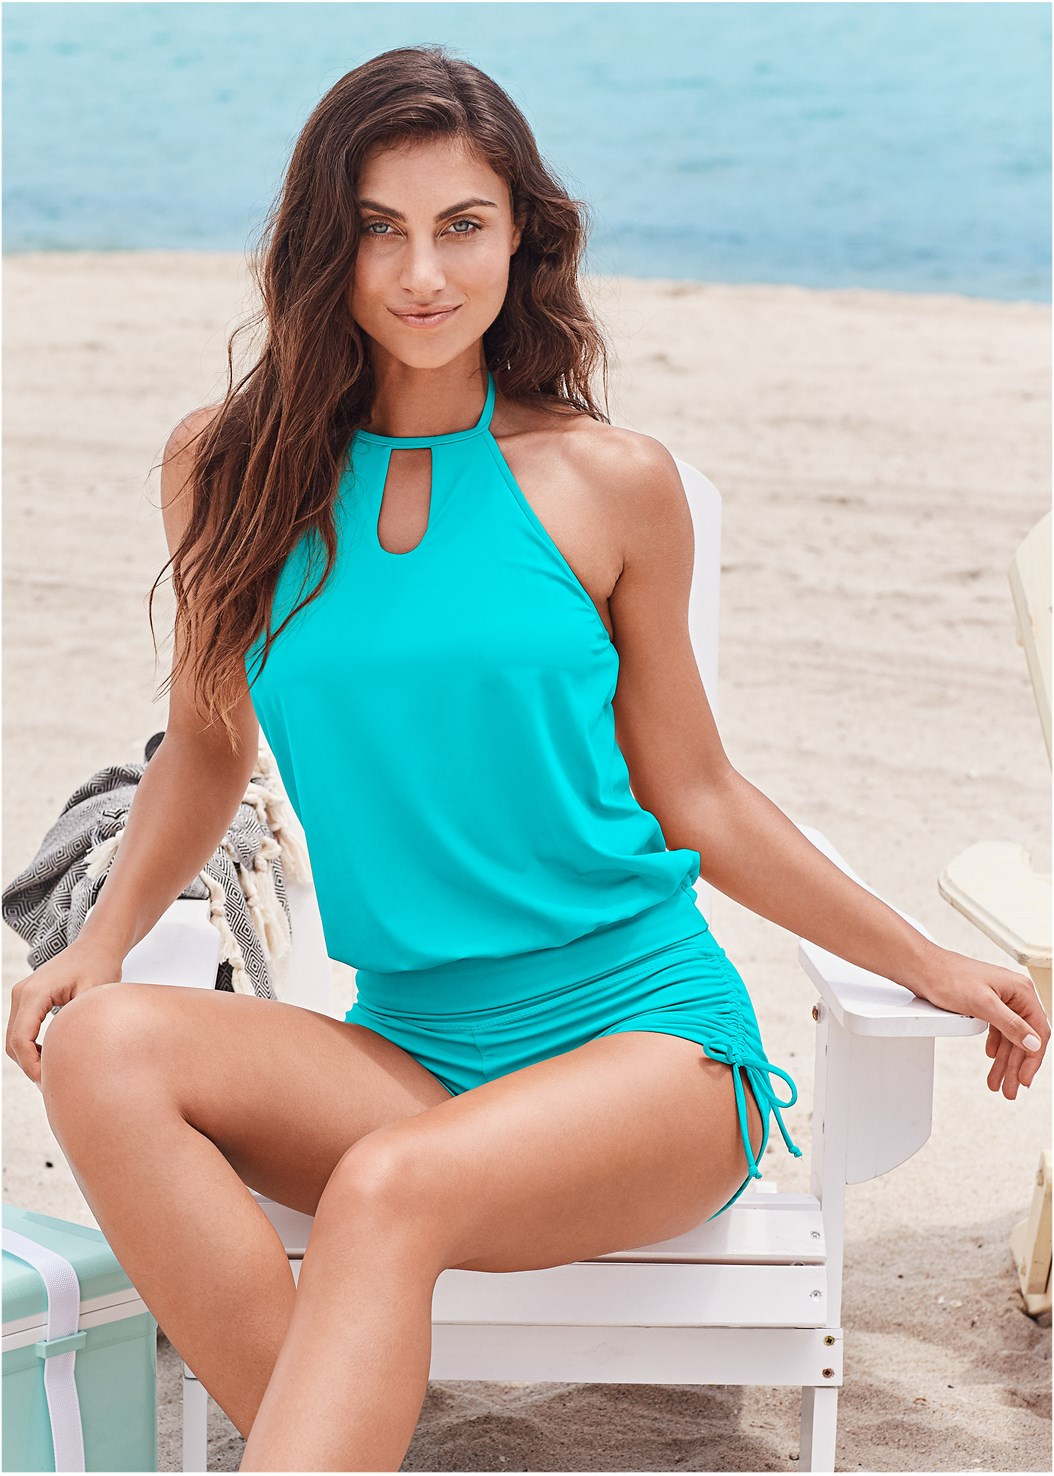 High Neck Blouson Tankini Top,Adjustable Side Swim Short,Mid Rise Hipster Classic Bikini Bottom,Swim Short,Long Wrap Cover-Up Dress,Multi Color Stone Sandals